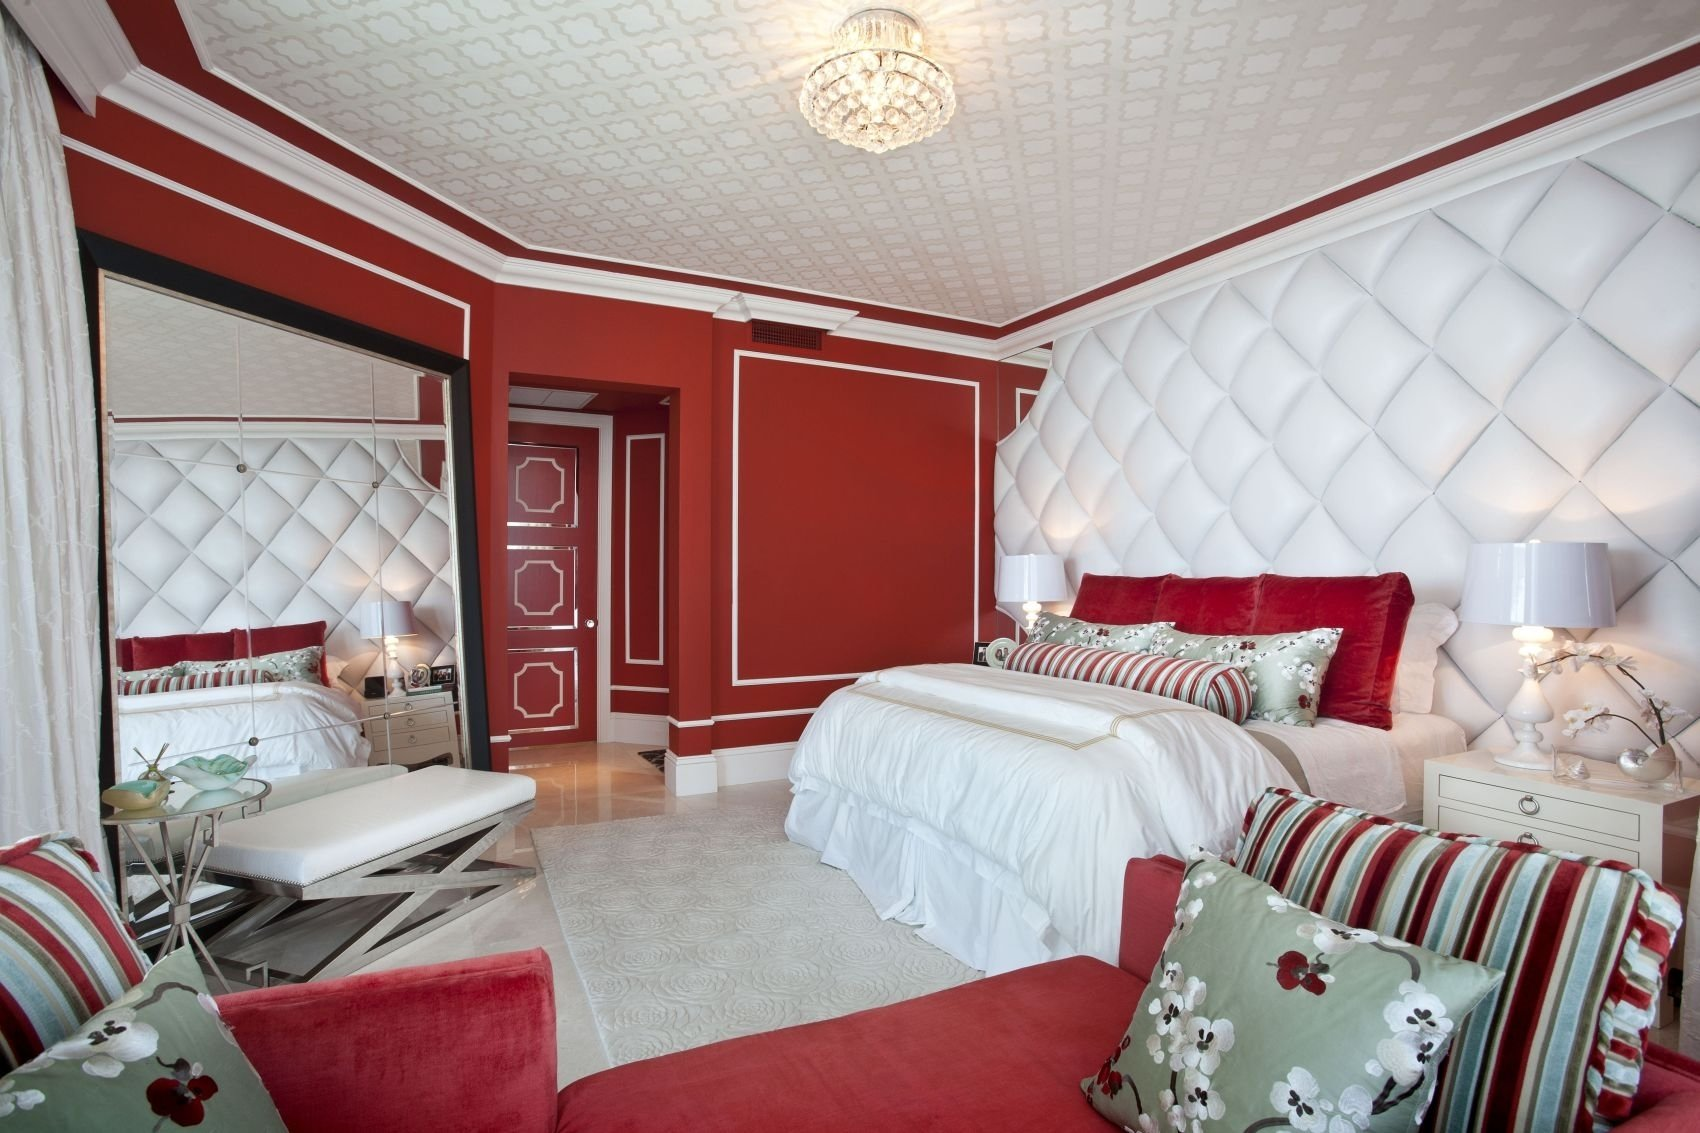 10 Lovely Black White And Red Bedroom Ideas modern bedroom decorating ideas black and white red black white and